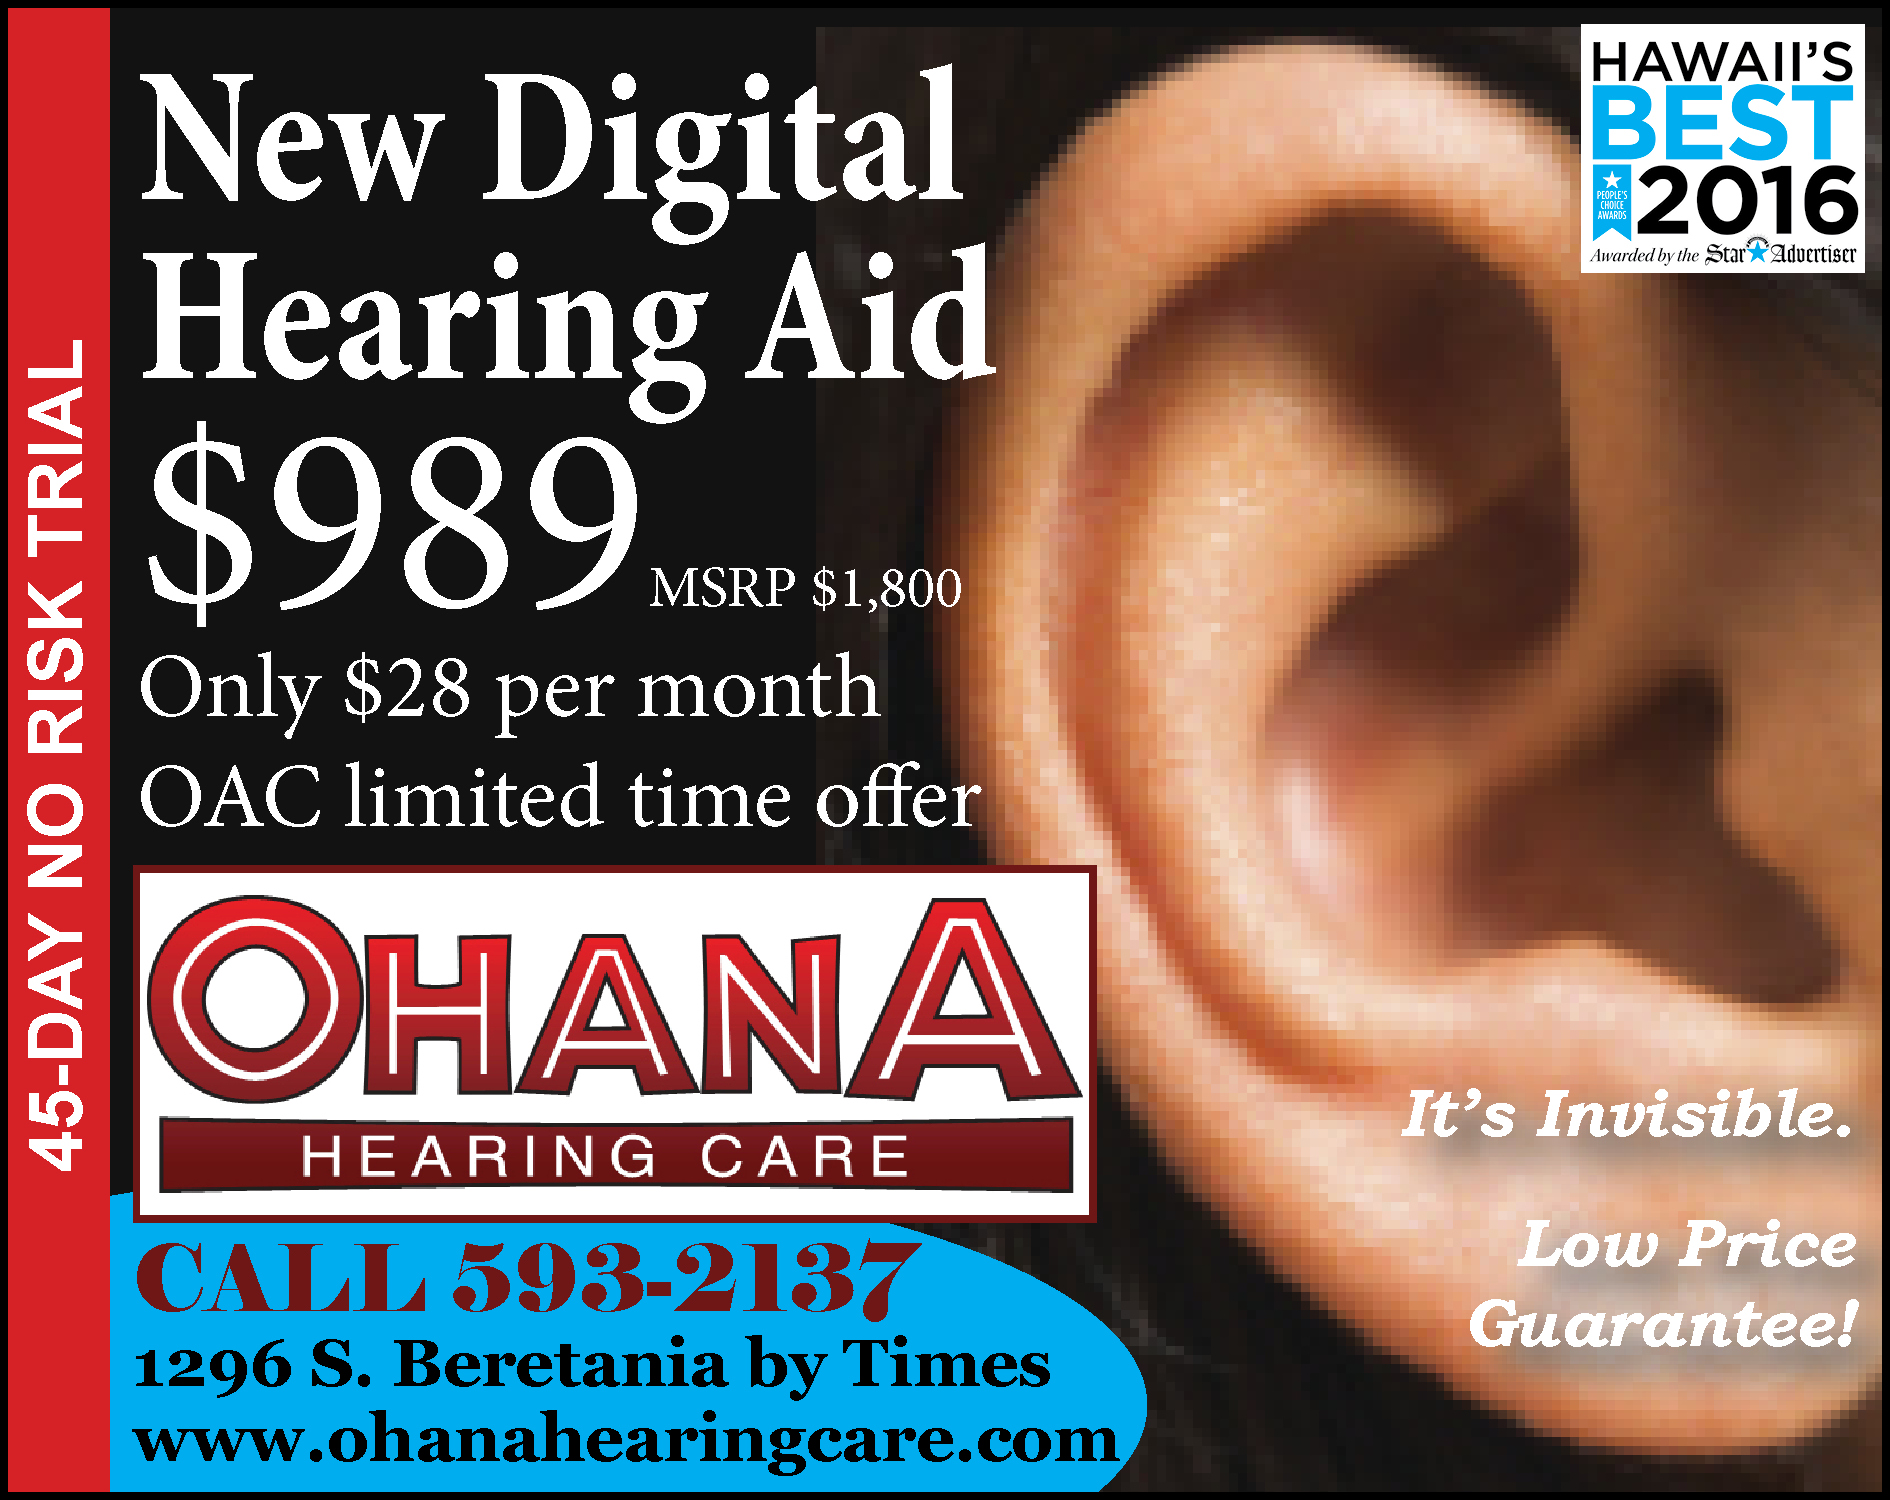 New Digital Hearing Aid AD coupon page.png